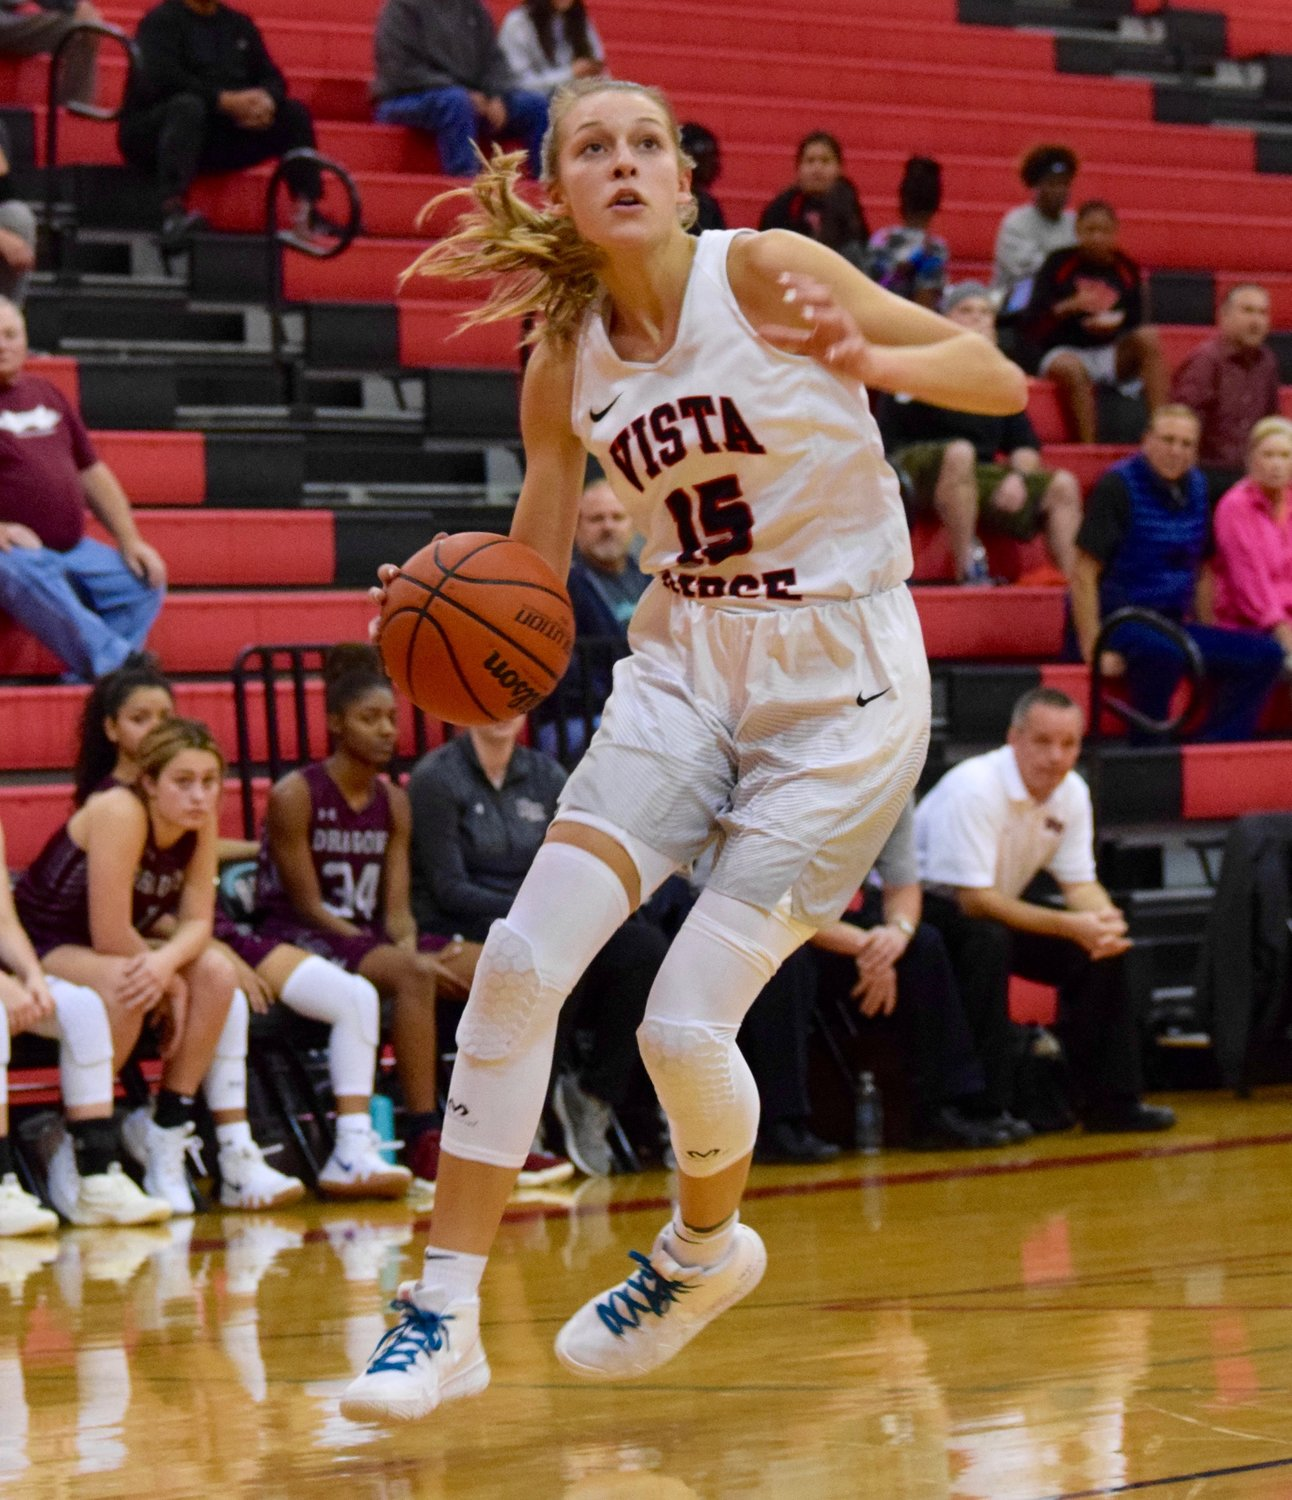 A.J. Marotte scored a team-high 23 points and Vista Ridge beat Round Rock 69-46 in the first district game of the season for the Lady Rangers Tuesday night at home.